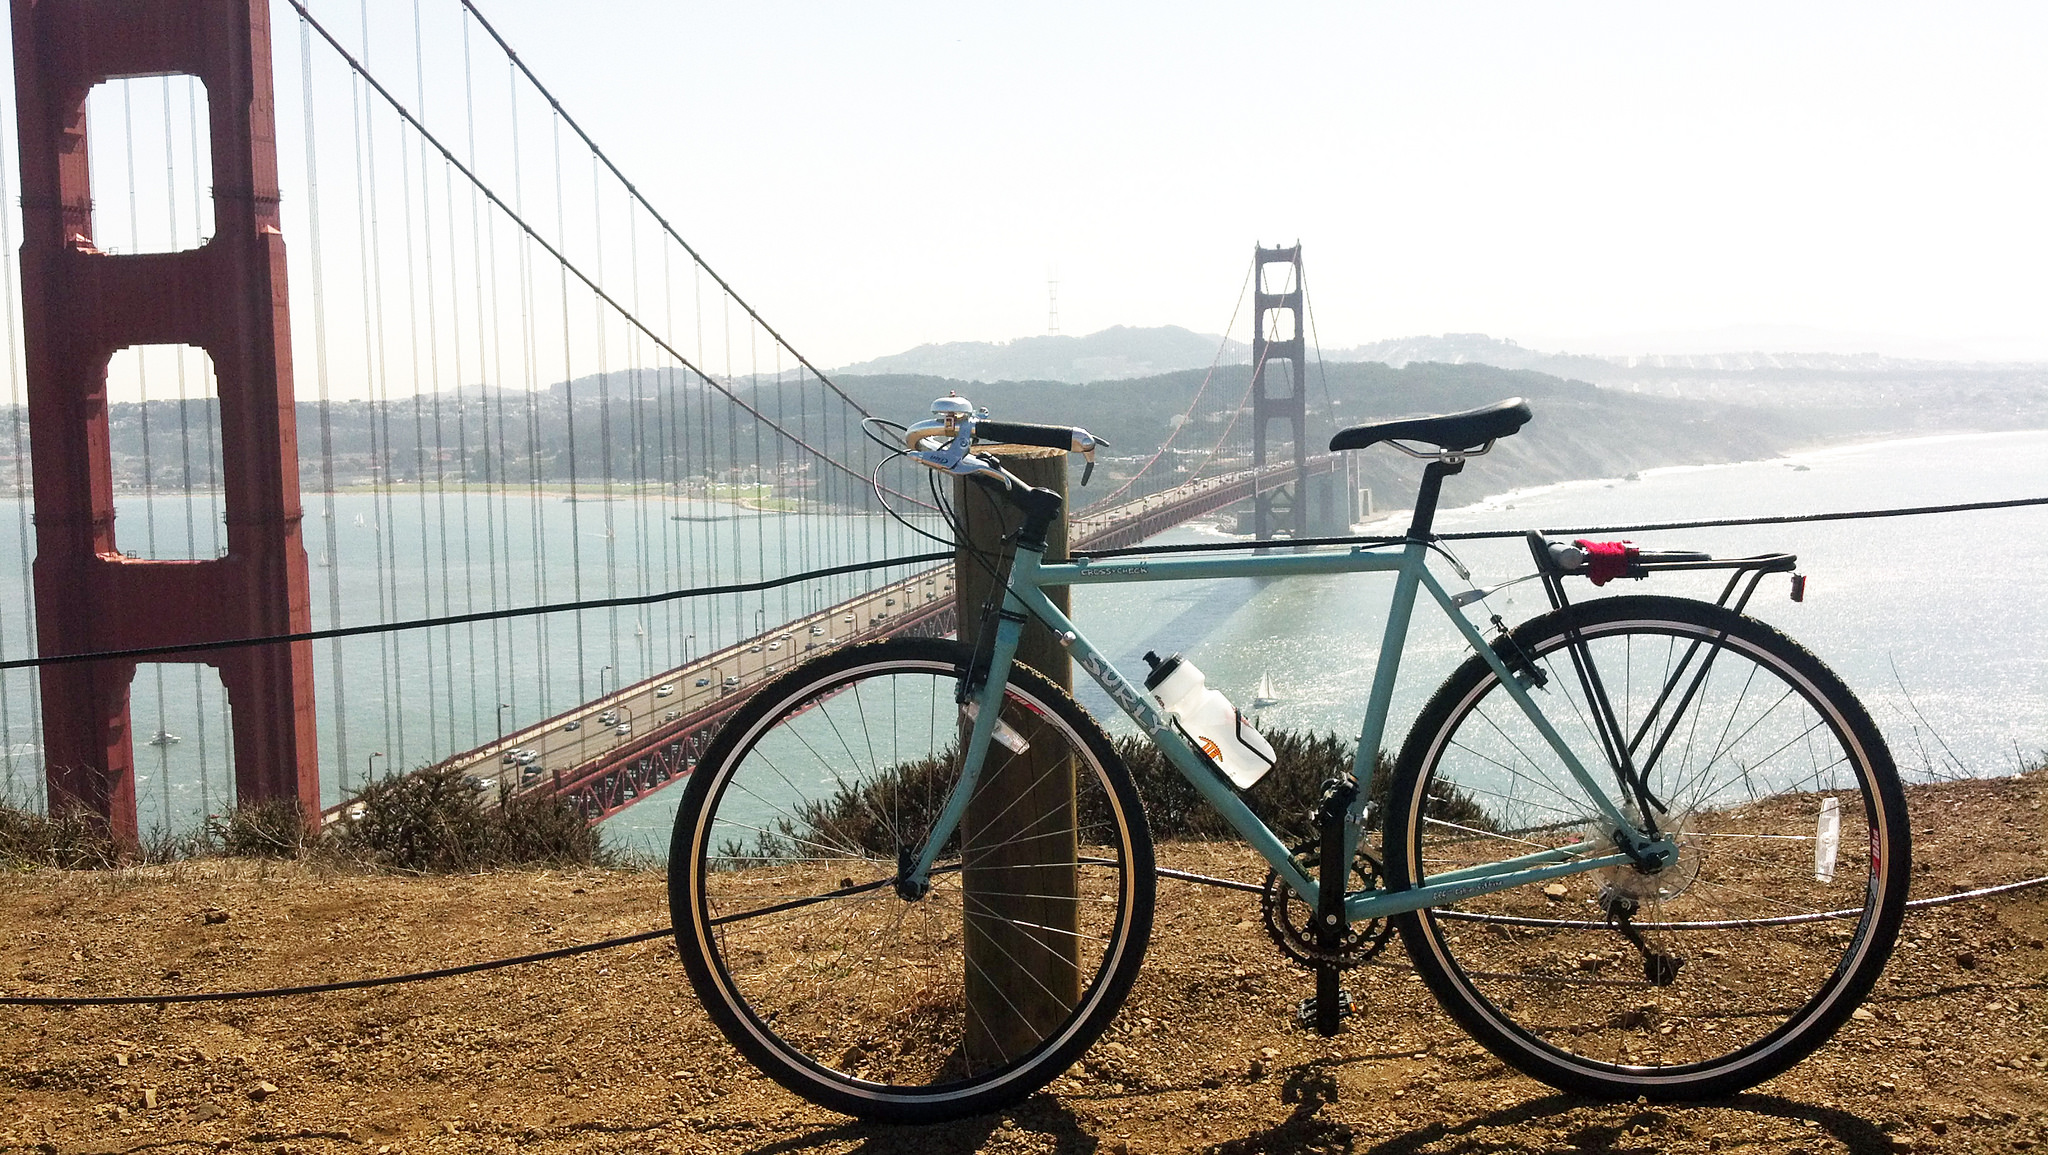 Bicycling in San Francisco